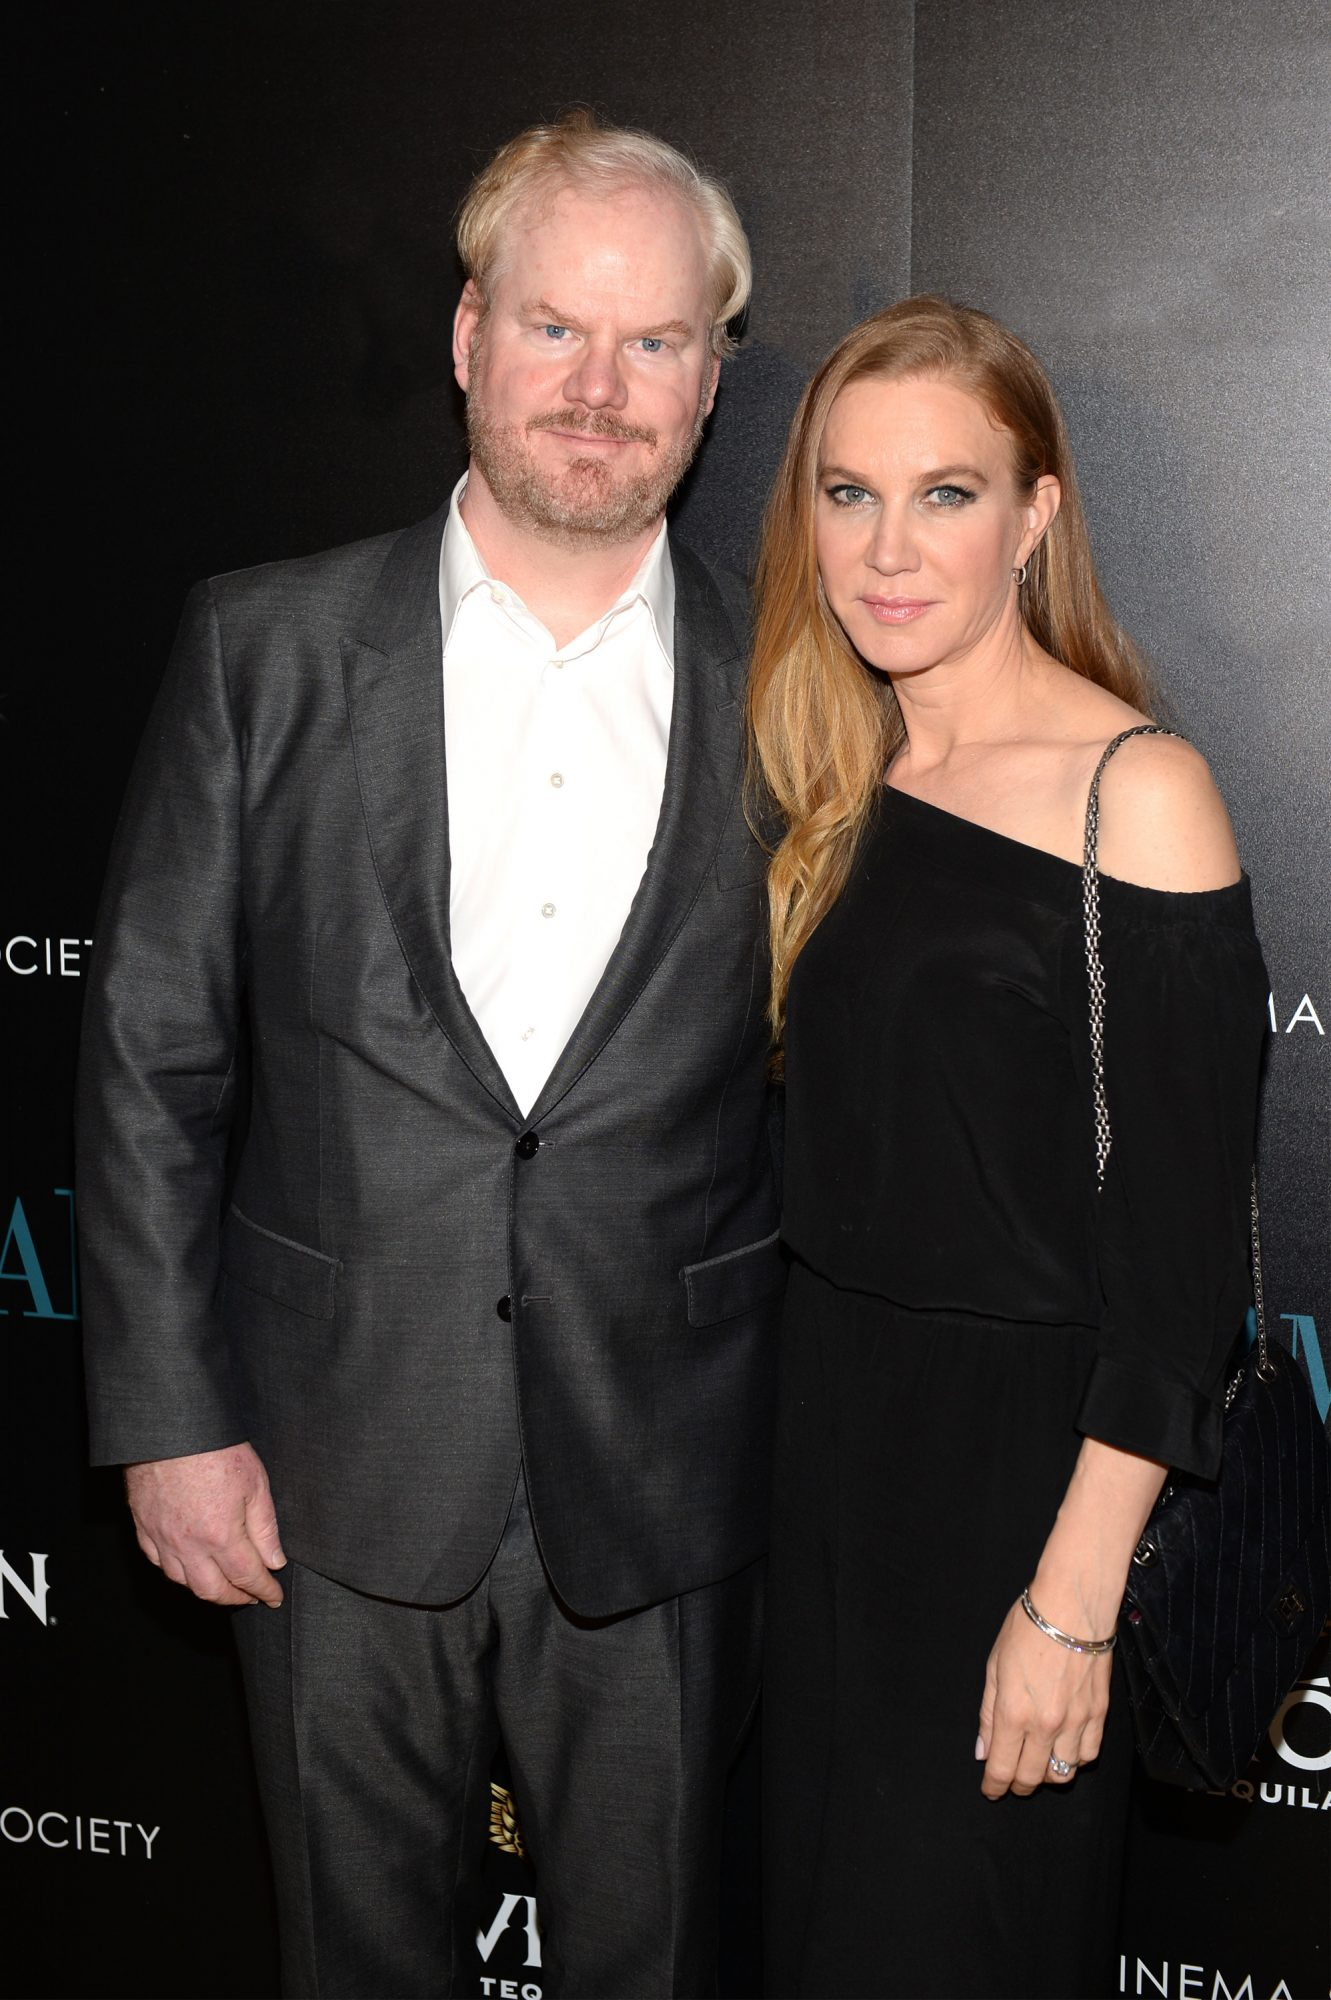 Comedian Jim Gaffigan's Wife Recovering After Surgery to Remove 'Large' Brain Tumor